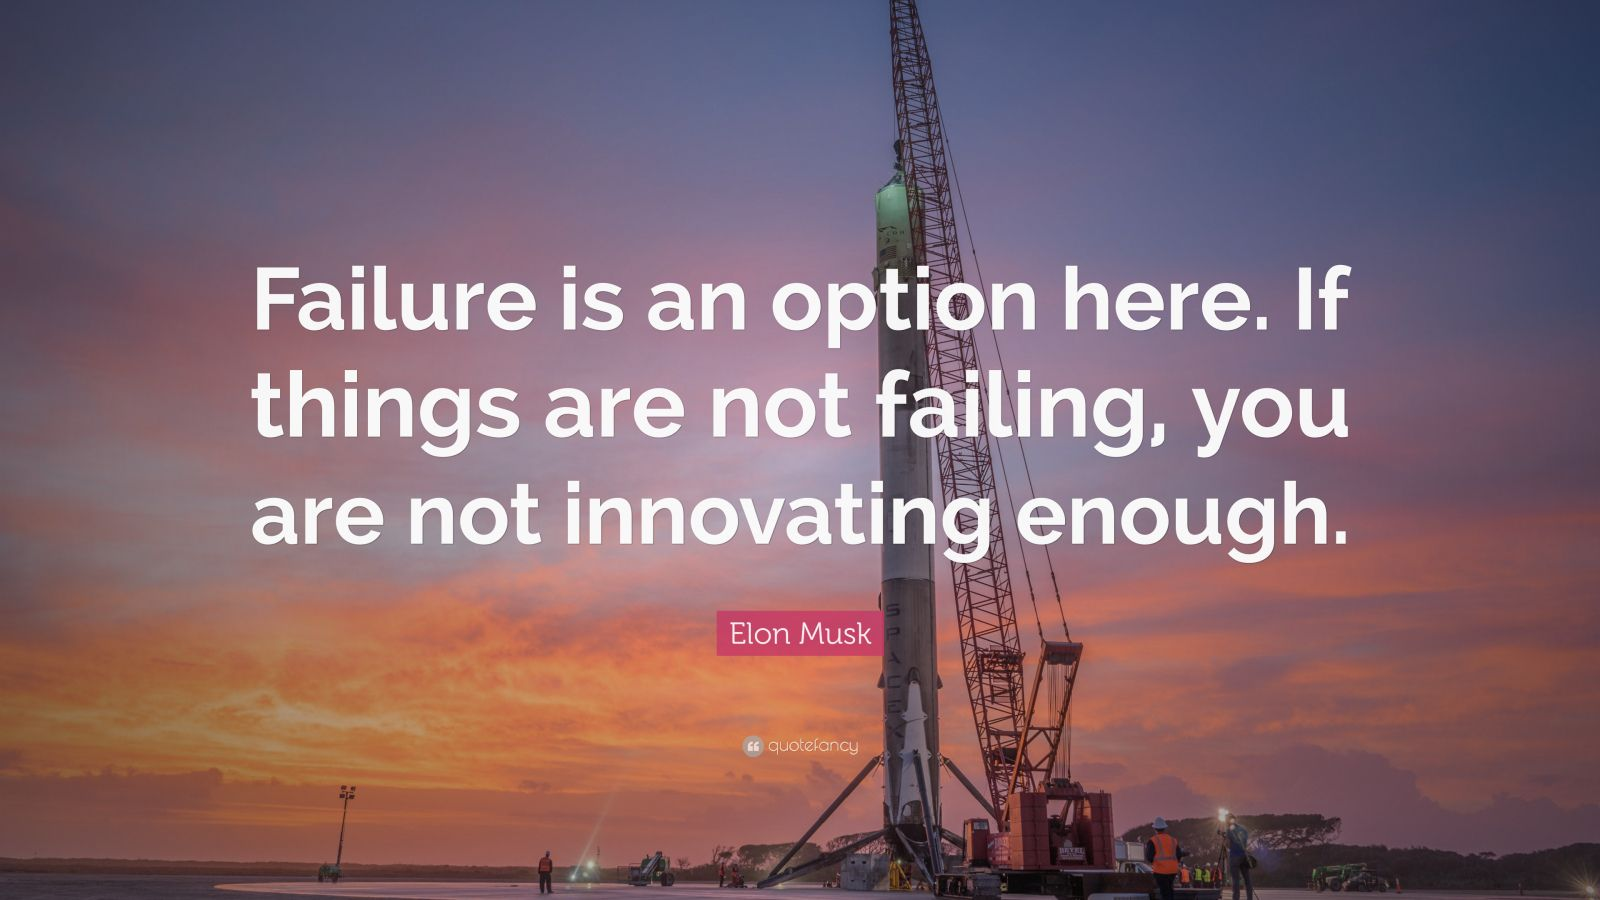 Inspiring Quotes With Wallpapers Elon Musk Quote Failure Is An Option Here If Things Are